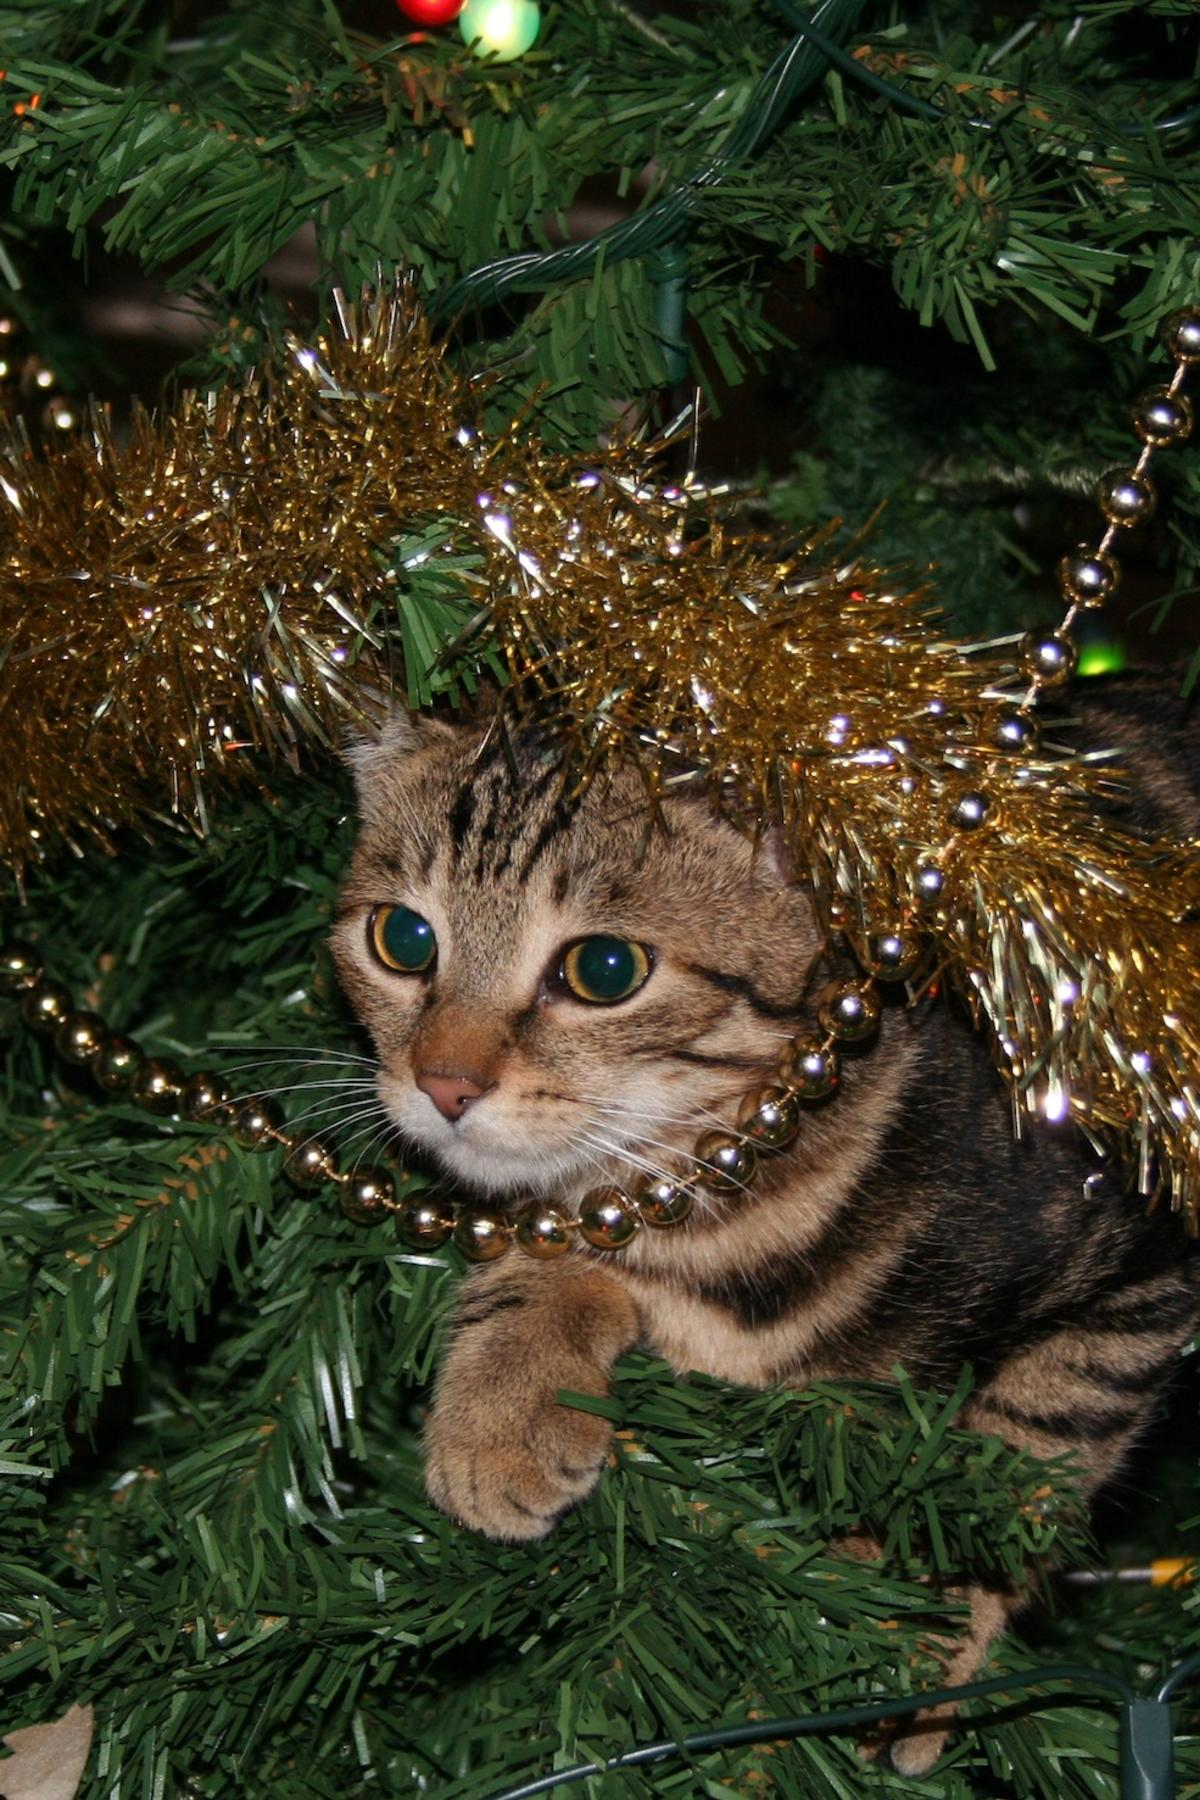 Why cats obsess over Christmas trees | Pursuit by The University of ...